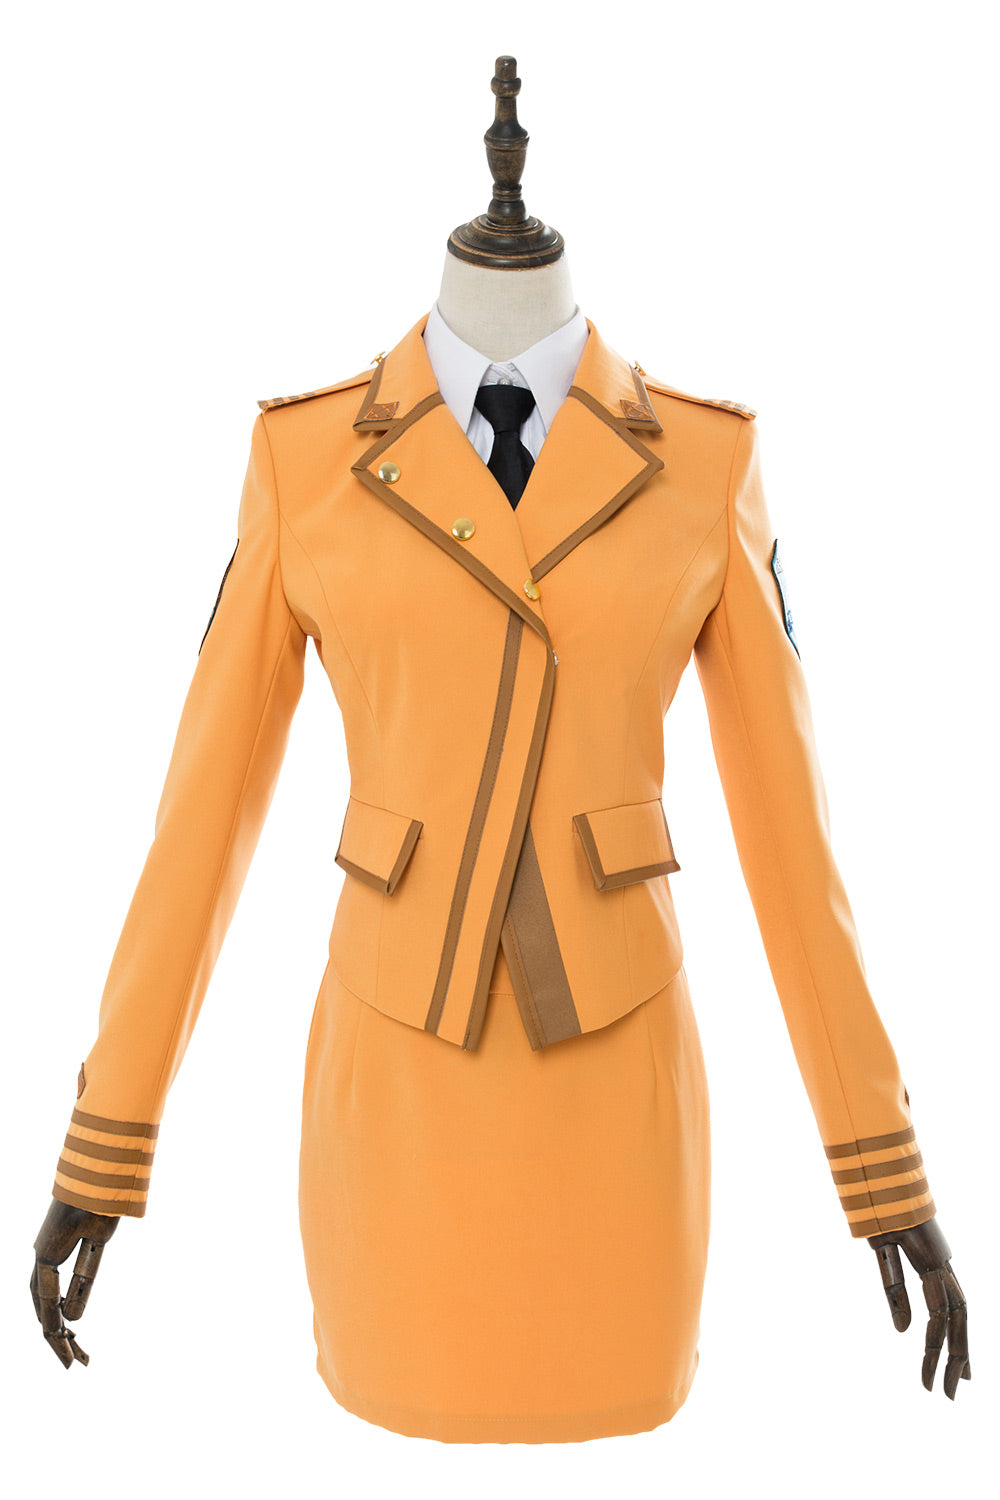 Full Metal Panic! 4: Invisible Victory Teresa Testarossa/Tessa Cosplay Uniforme Scolaire